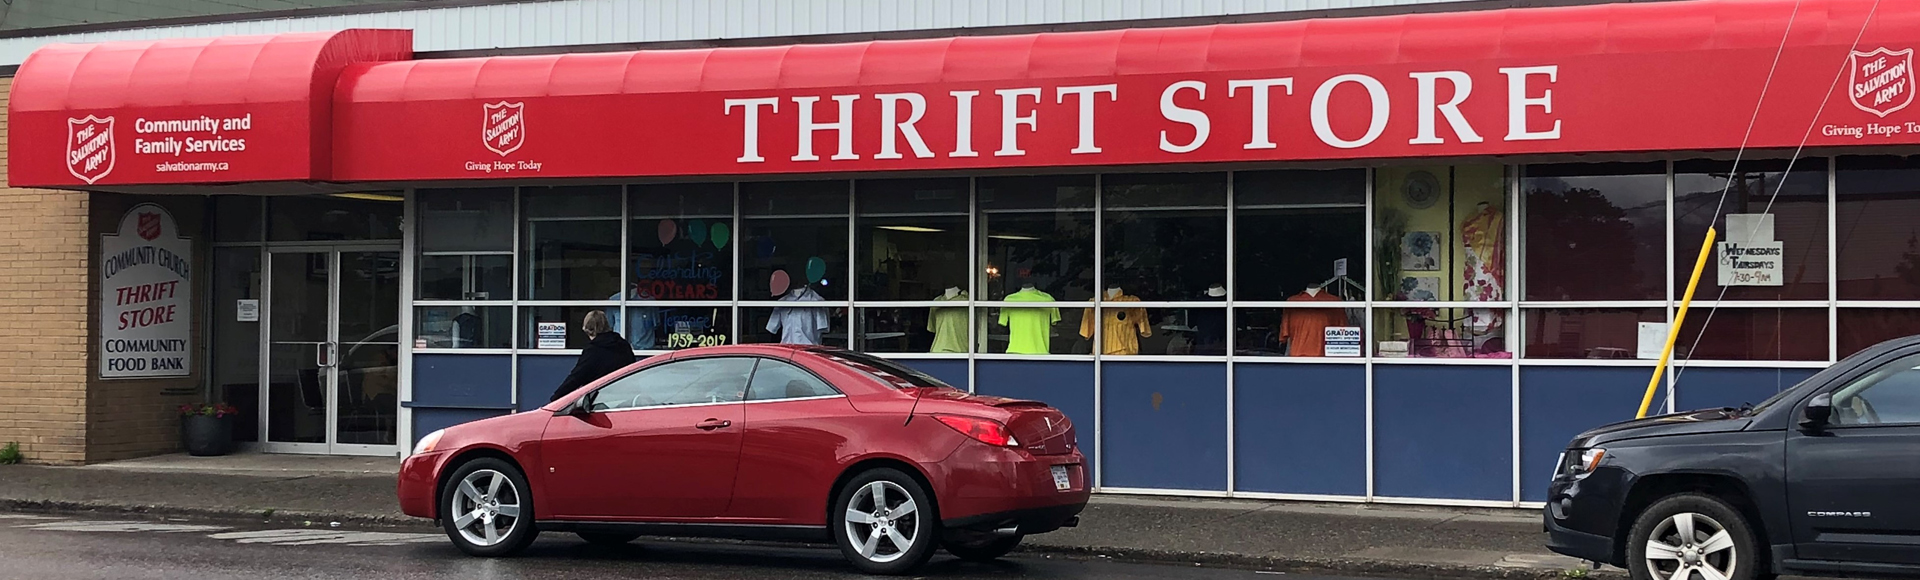 Thrift Store - Home Page 1920x580